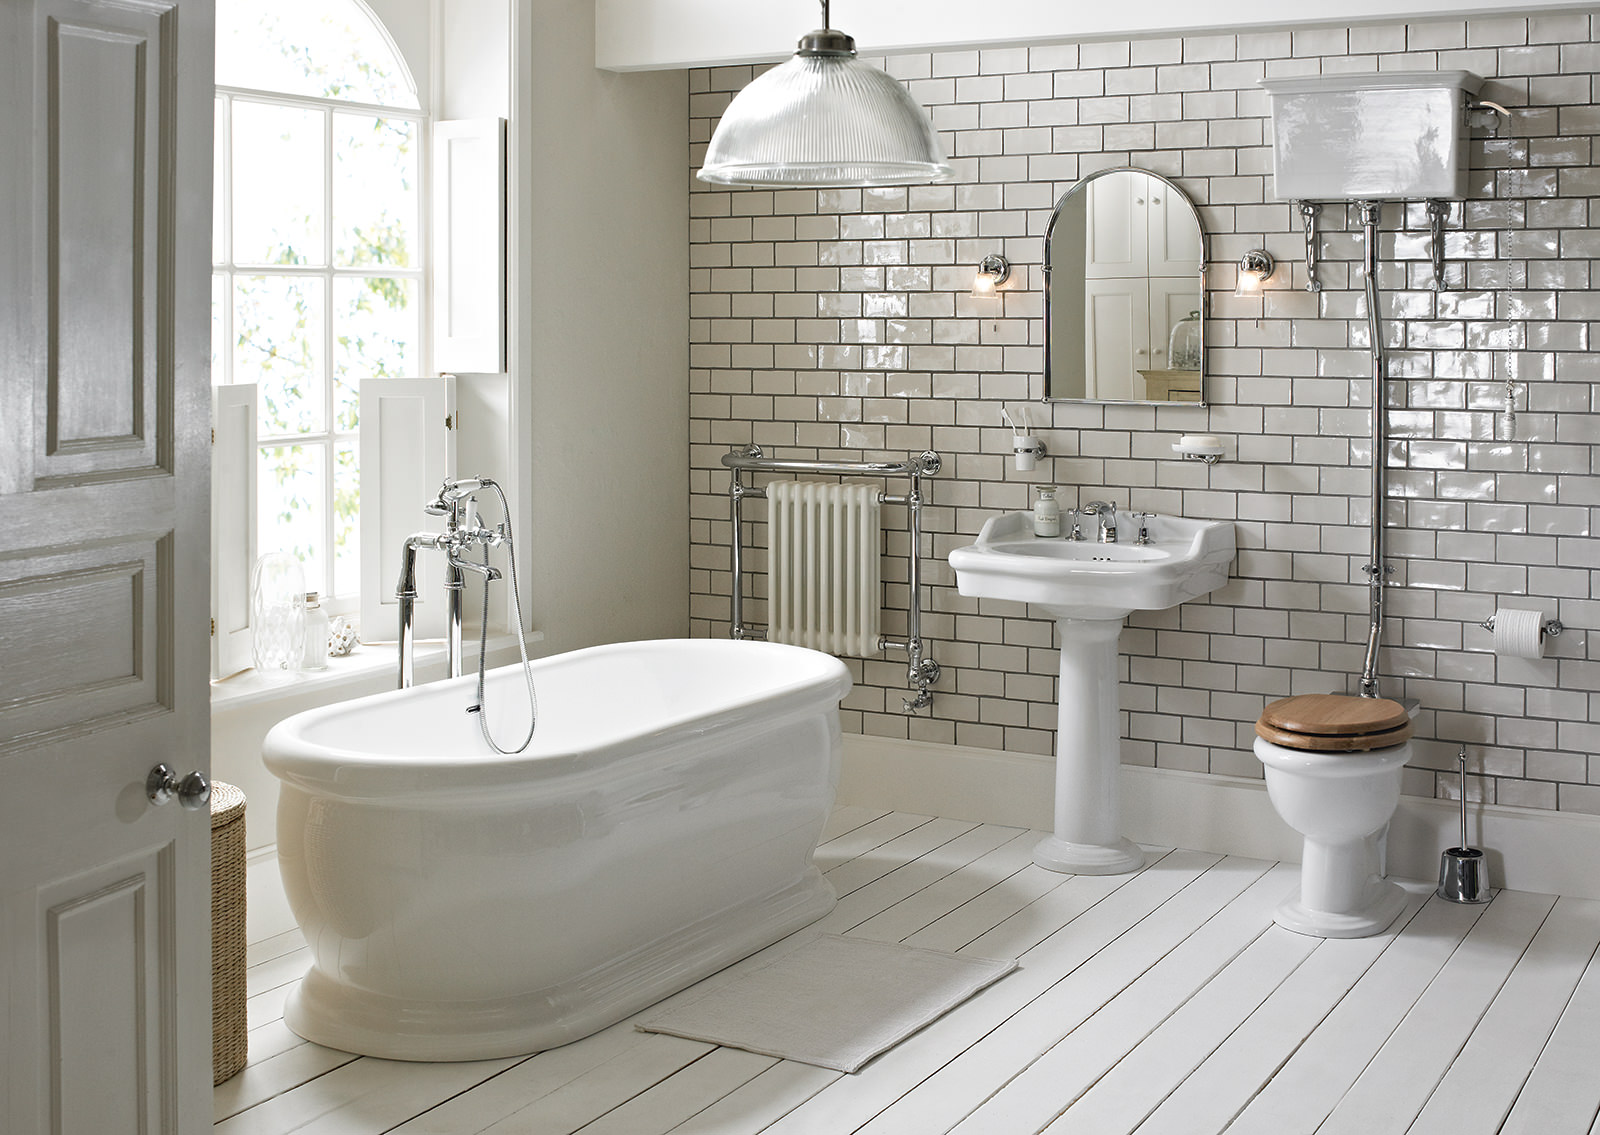 Perfect 20 Great Pictures And Ideas Of Victorian Style Bathroom Wall Tiles